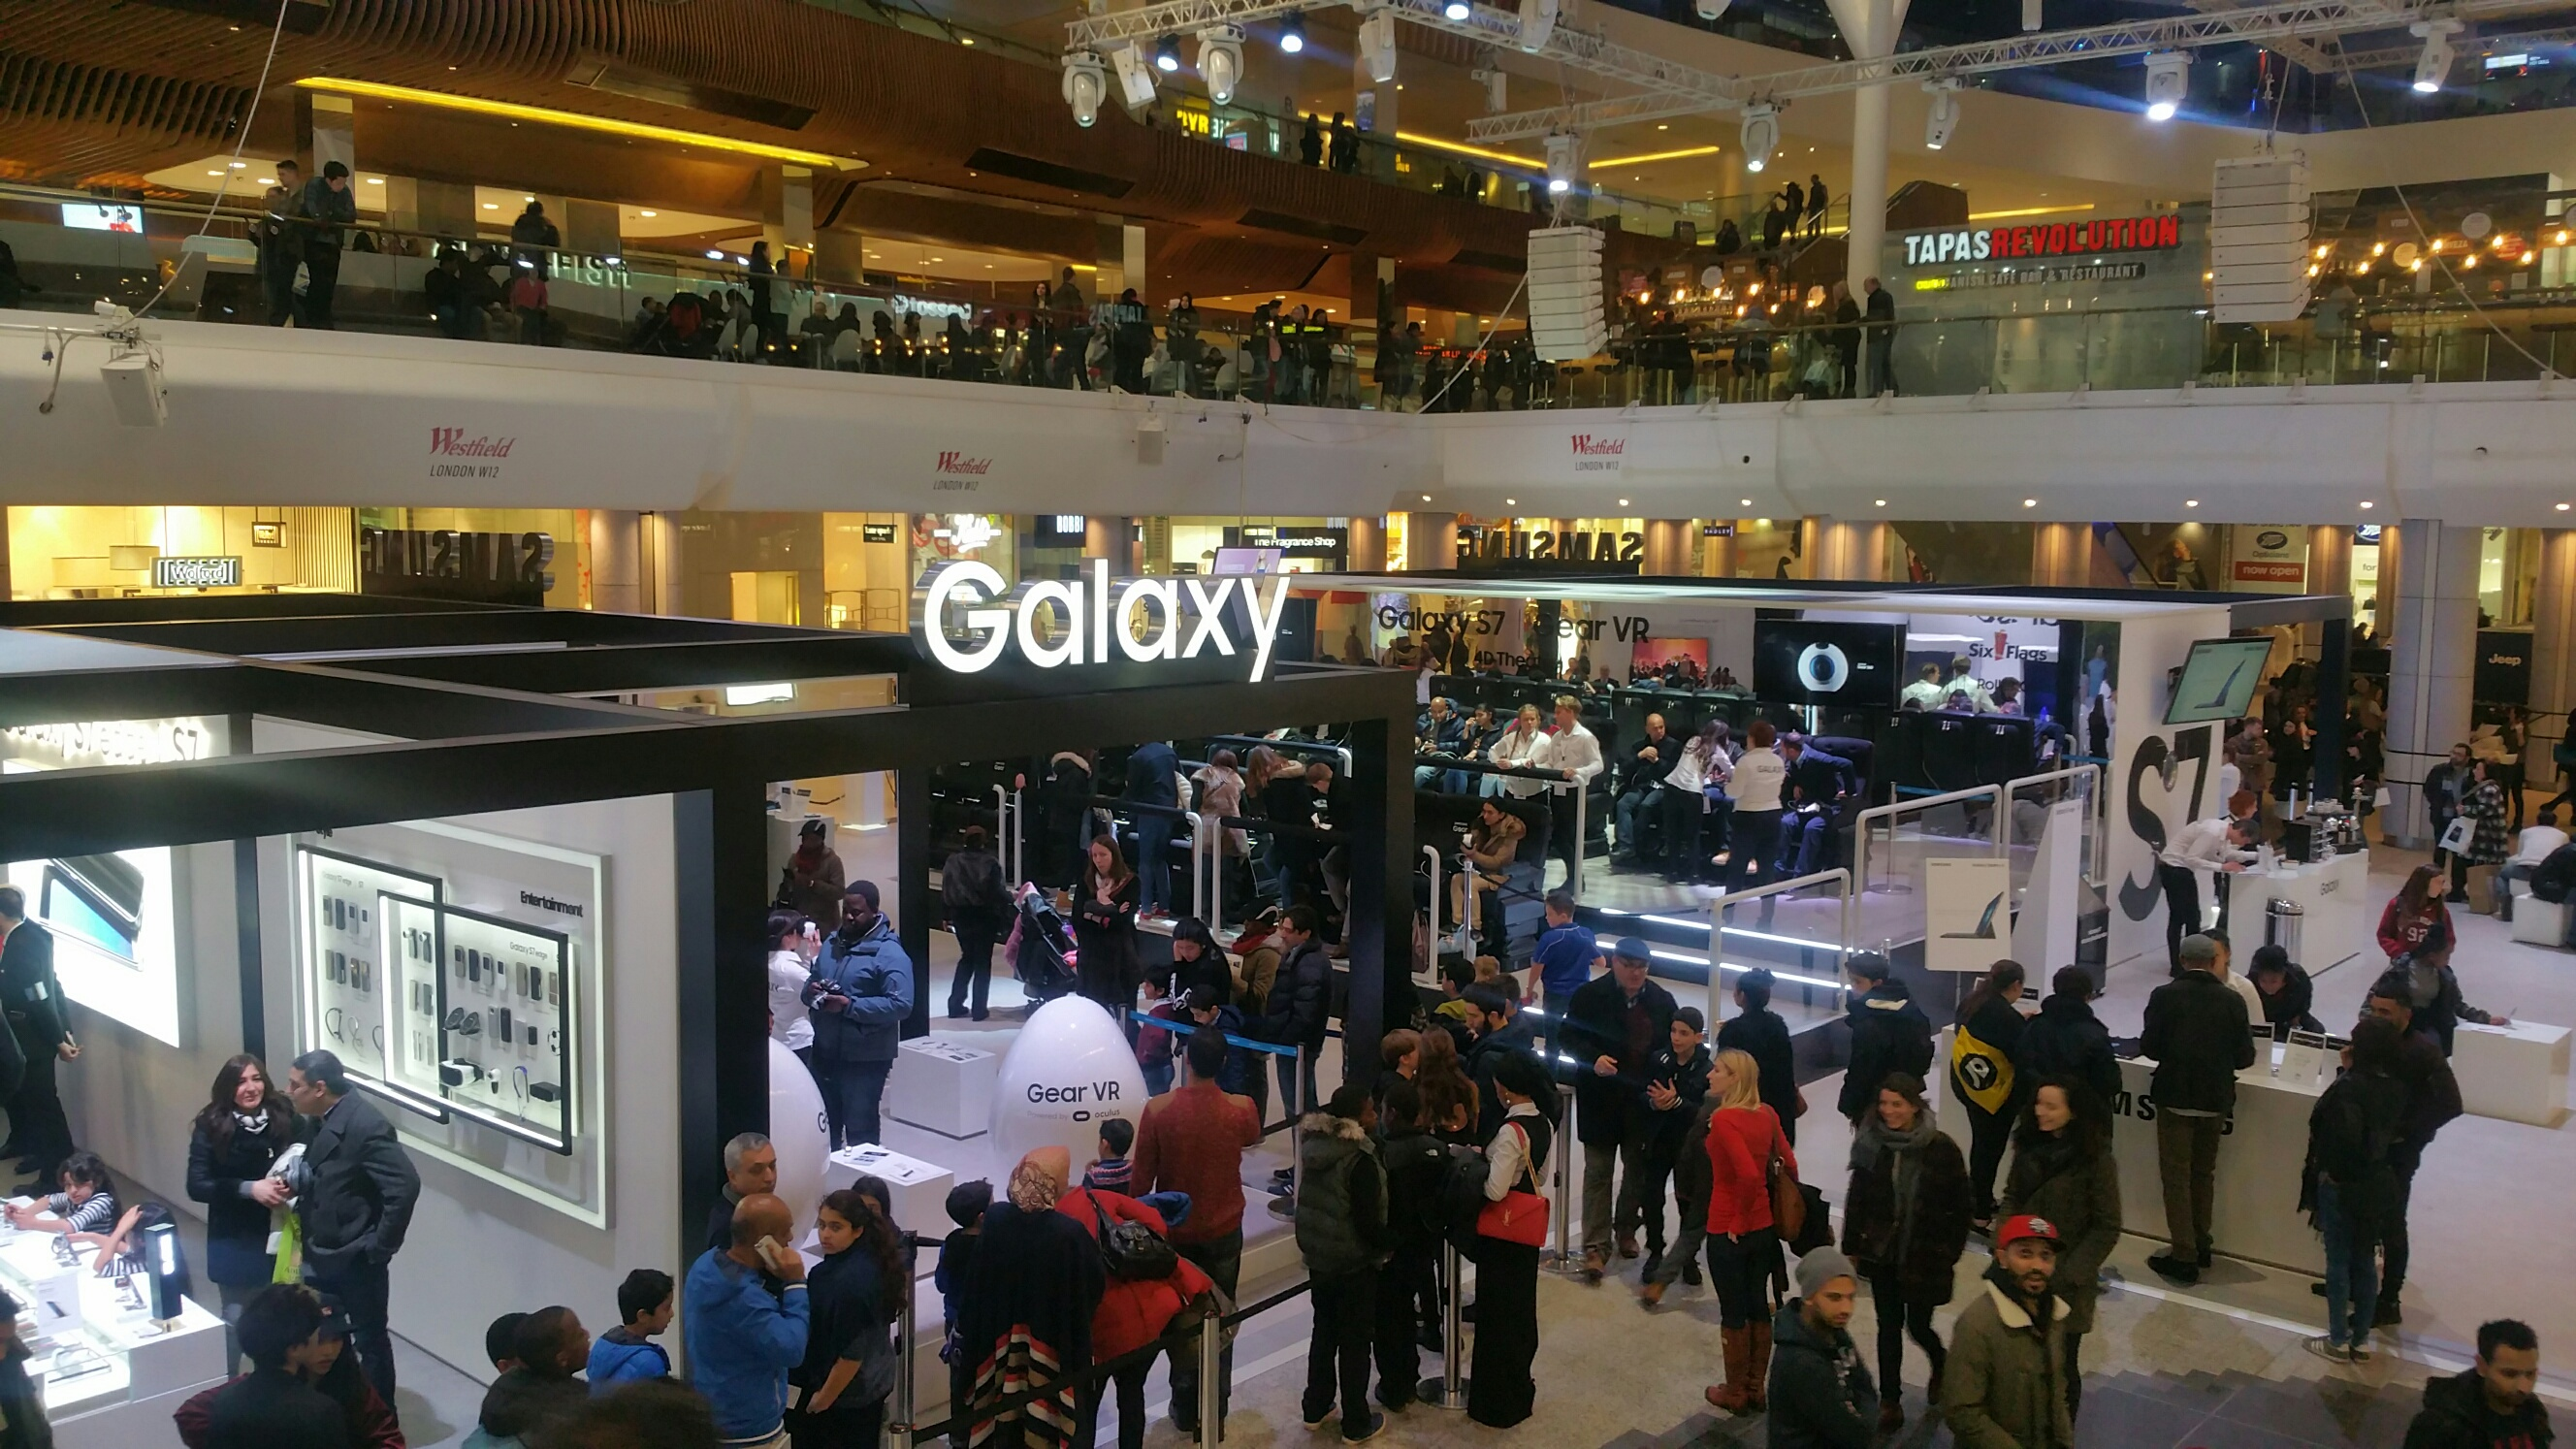 Samsung Promotes Latest Technology with Westfield Installation